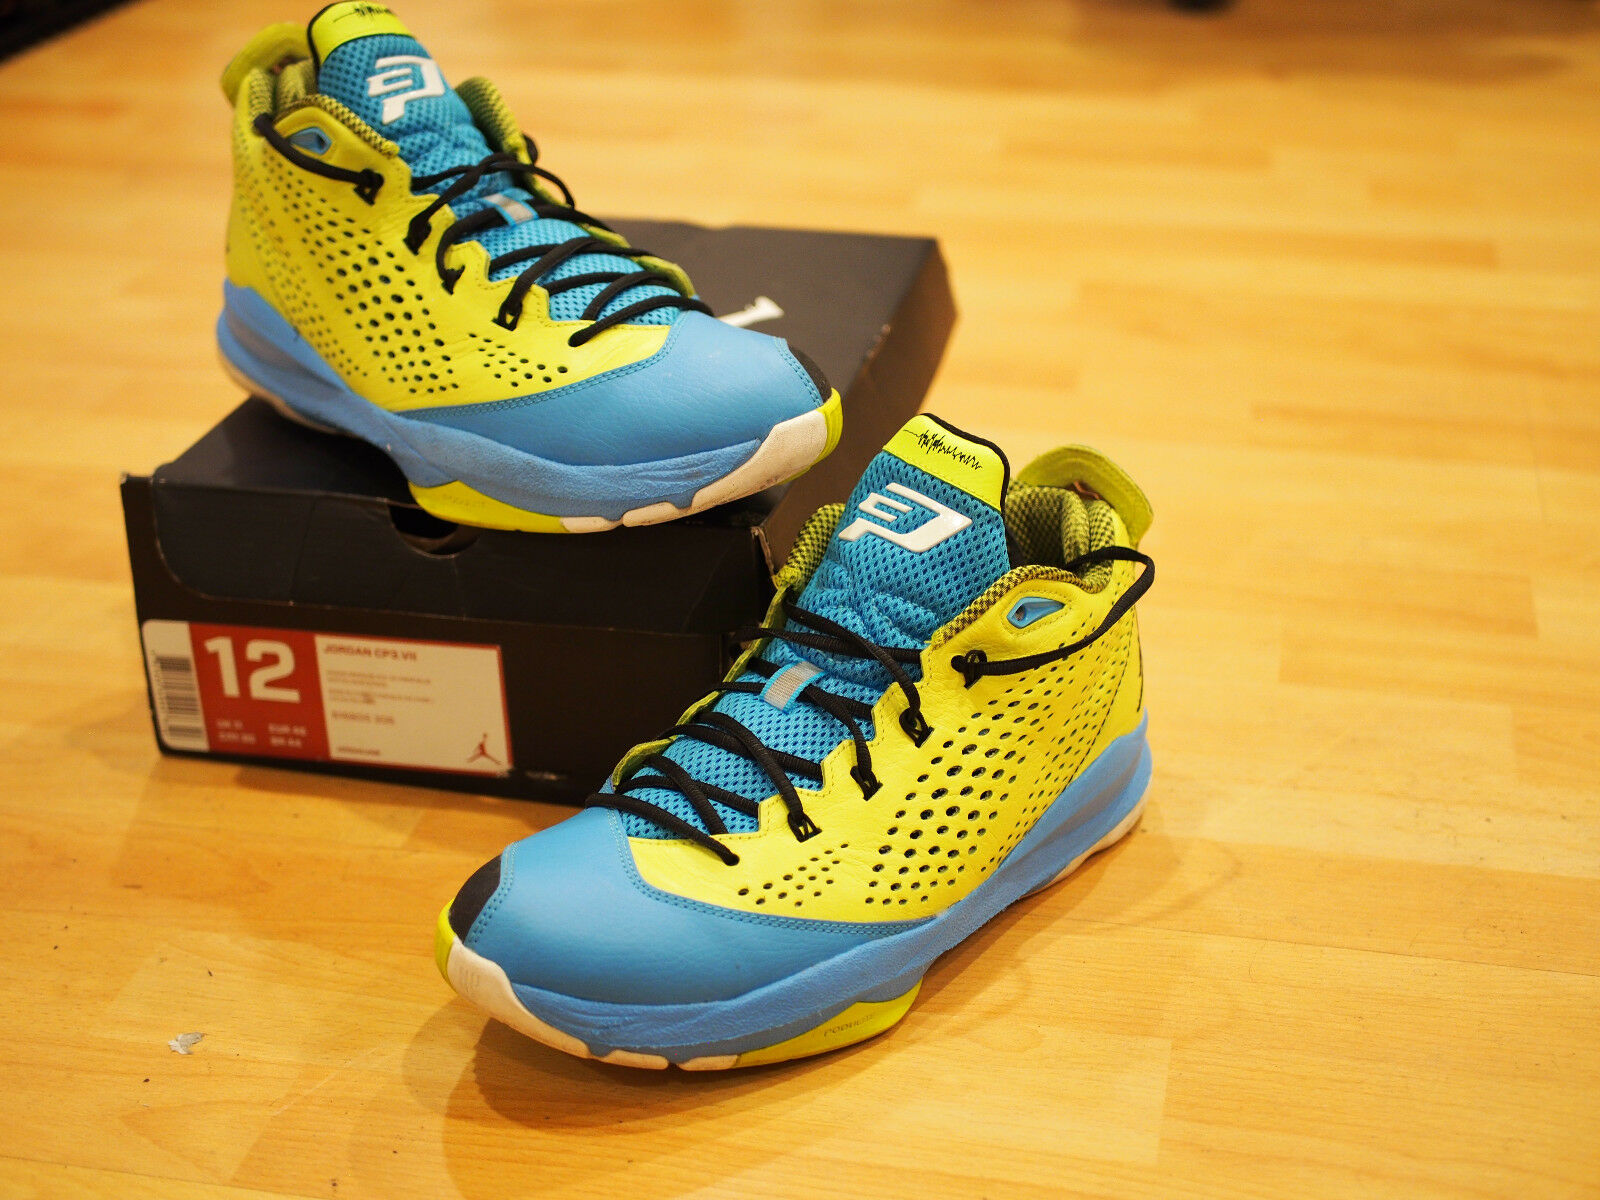 Mens Nike Air Jordan CP3 VII Venom Green Powder bluee Basketball shoes (Size 12)